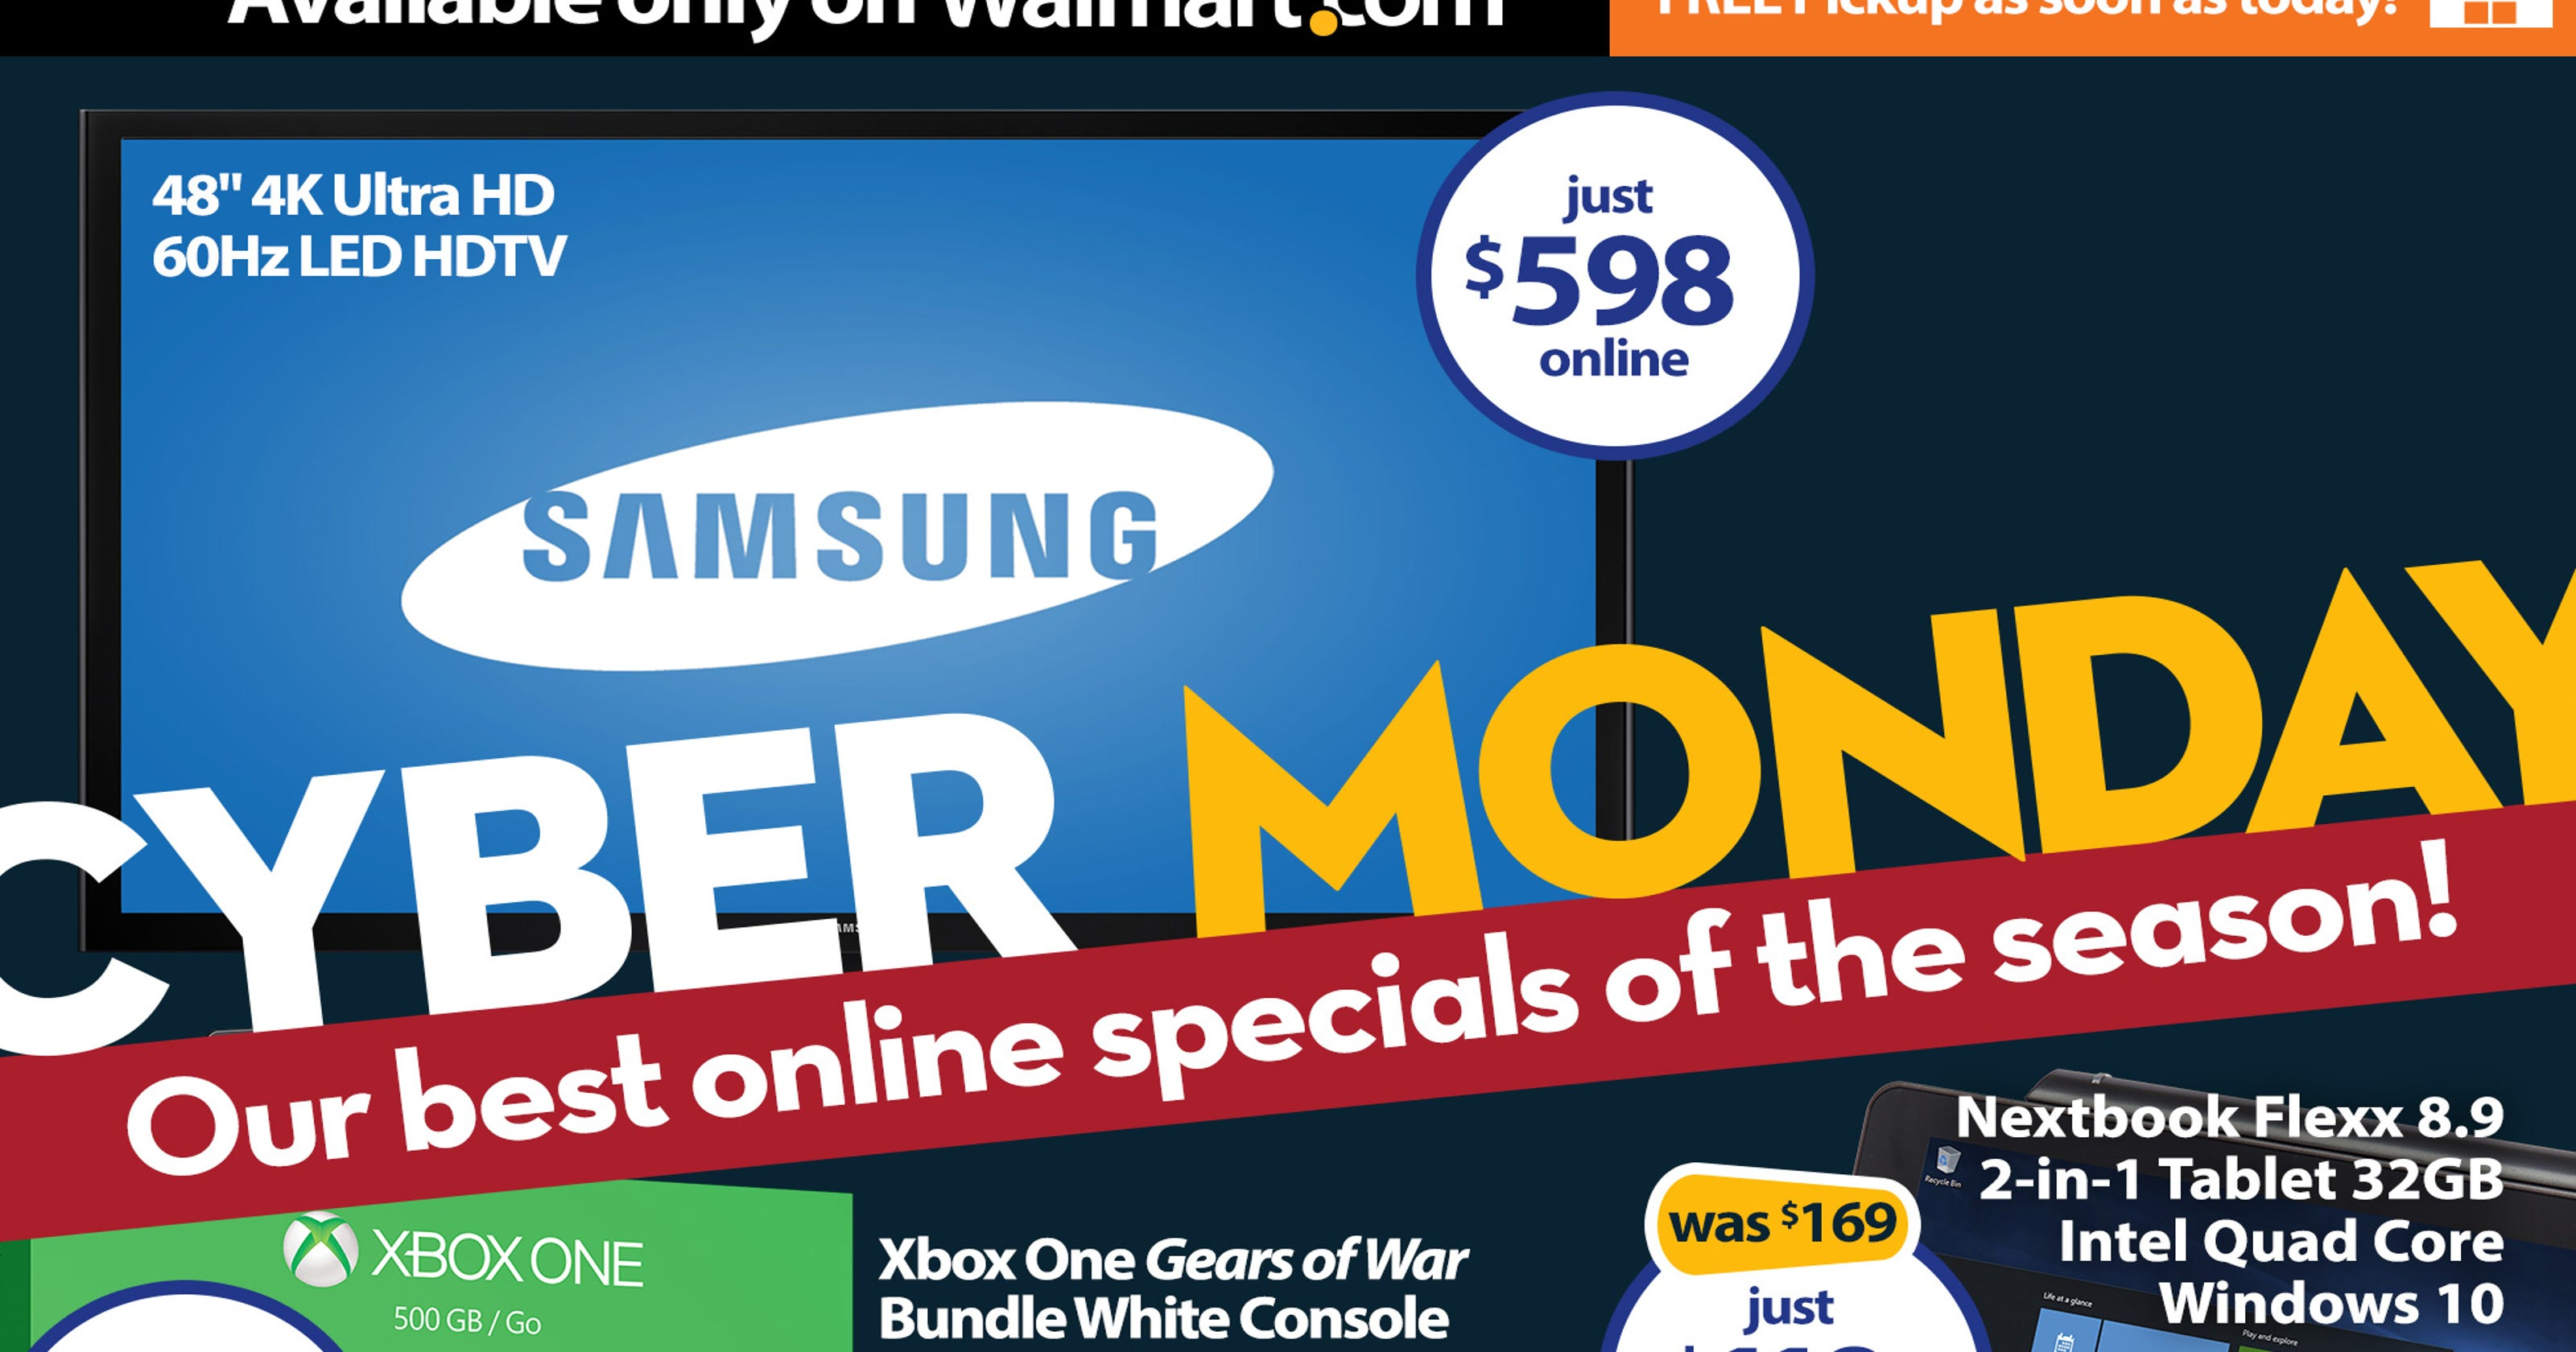 walmart cyber monday deals start sunday night. Black Bedroom Furniture Sets. Home Design Ideas